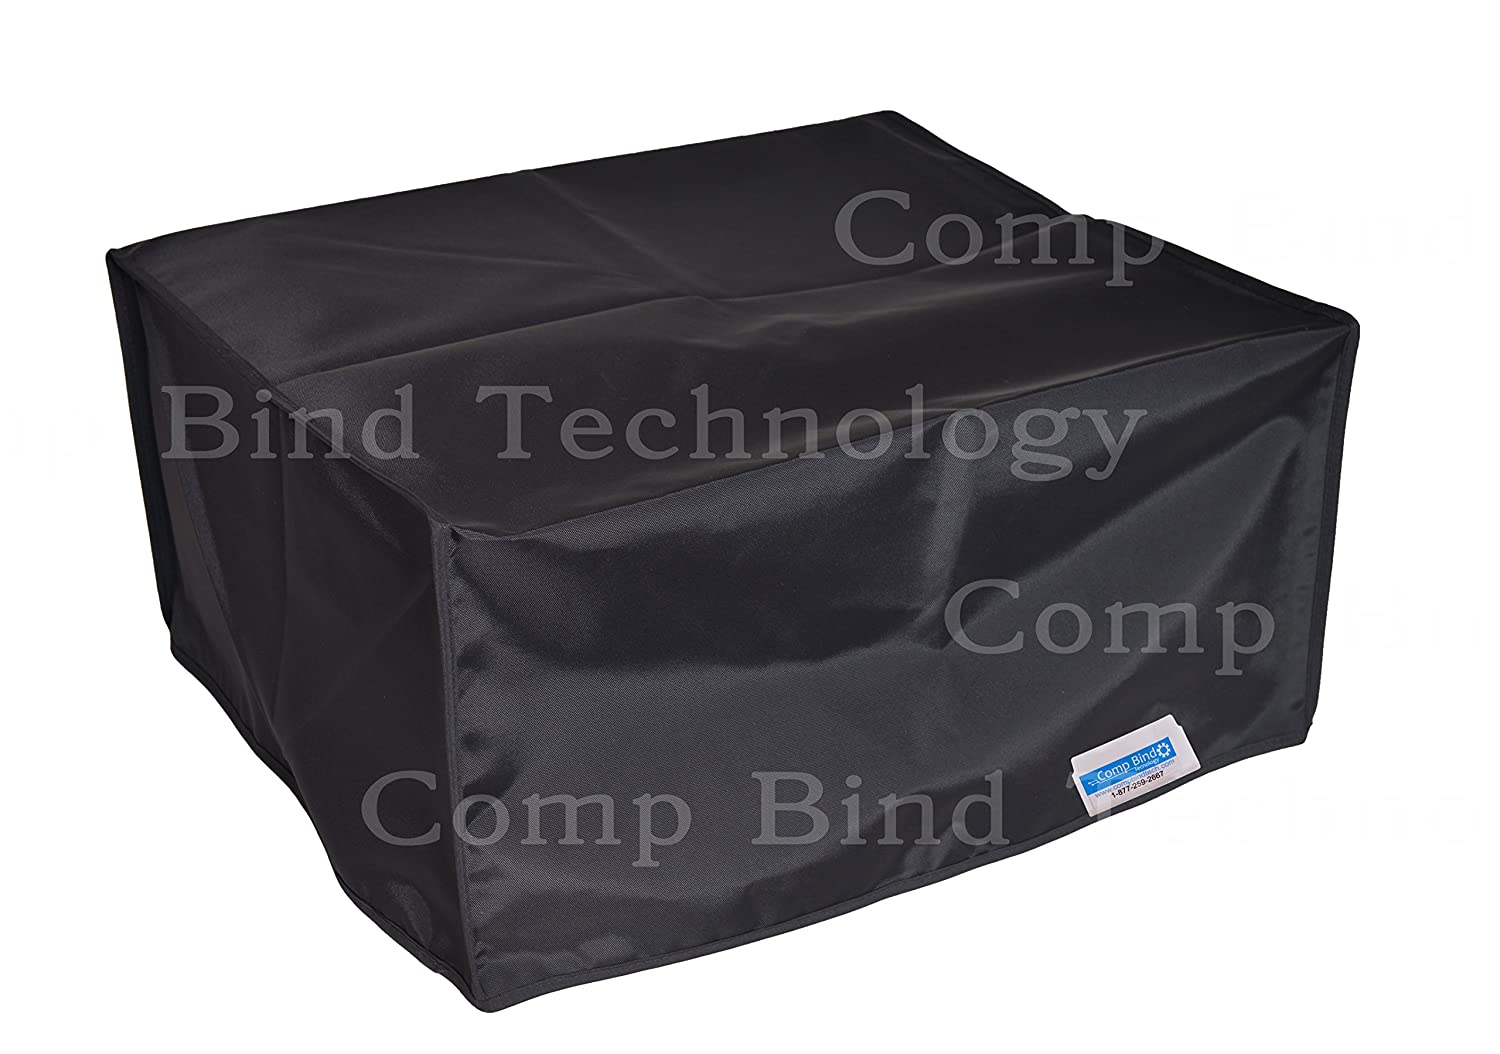 Comp Bind Technology Dust Cover for Brother HL-3180CDW Wireless Color Printer Black Nylon Anti-Static Dust Cover by Comp Bind Technology Dimensions 16.1''W x 19''D x 16.1''H CB2627